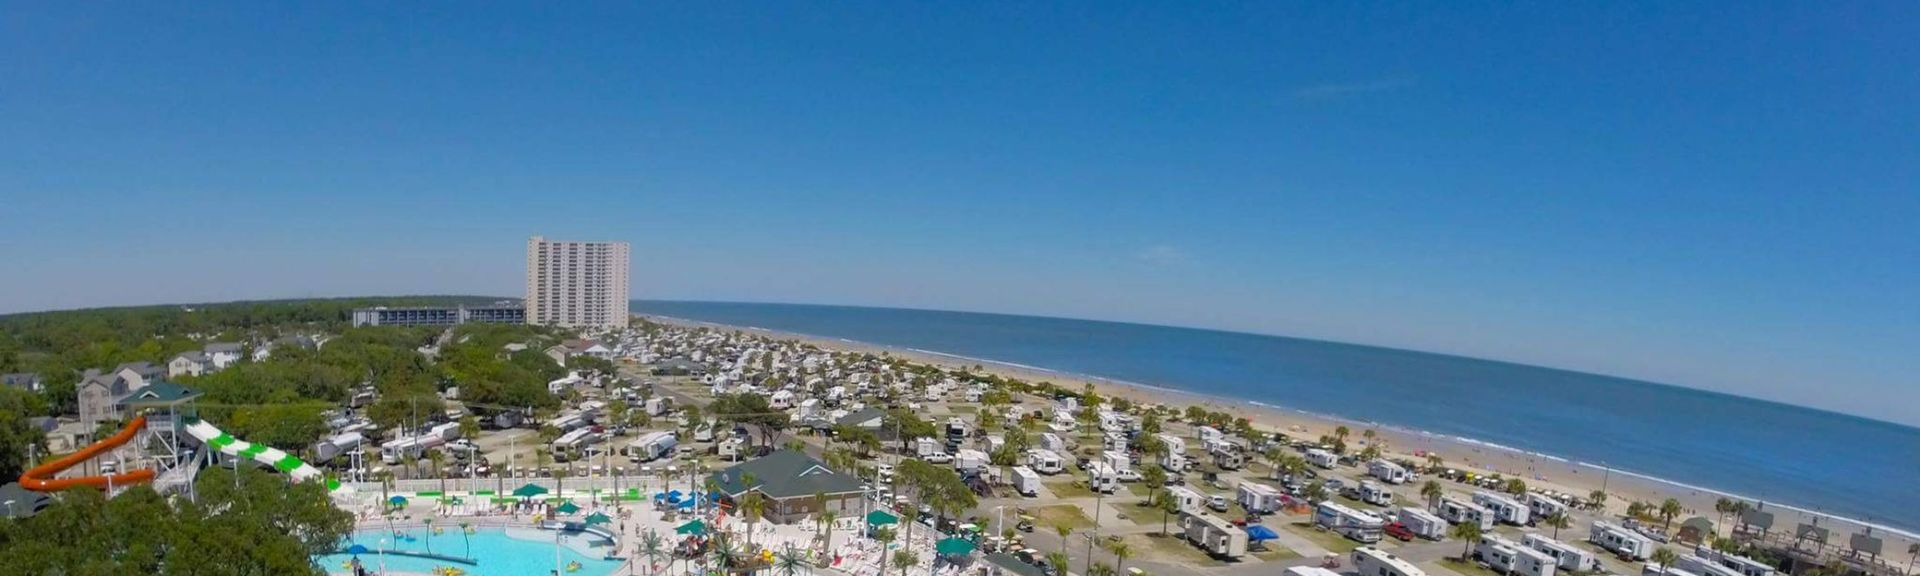 Ocean Lakes, Myrtle Beach, South Carolina, United States of America